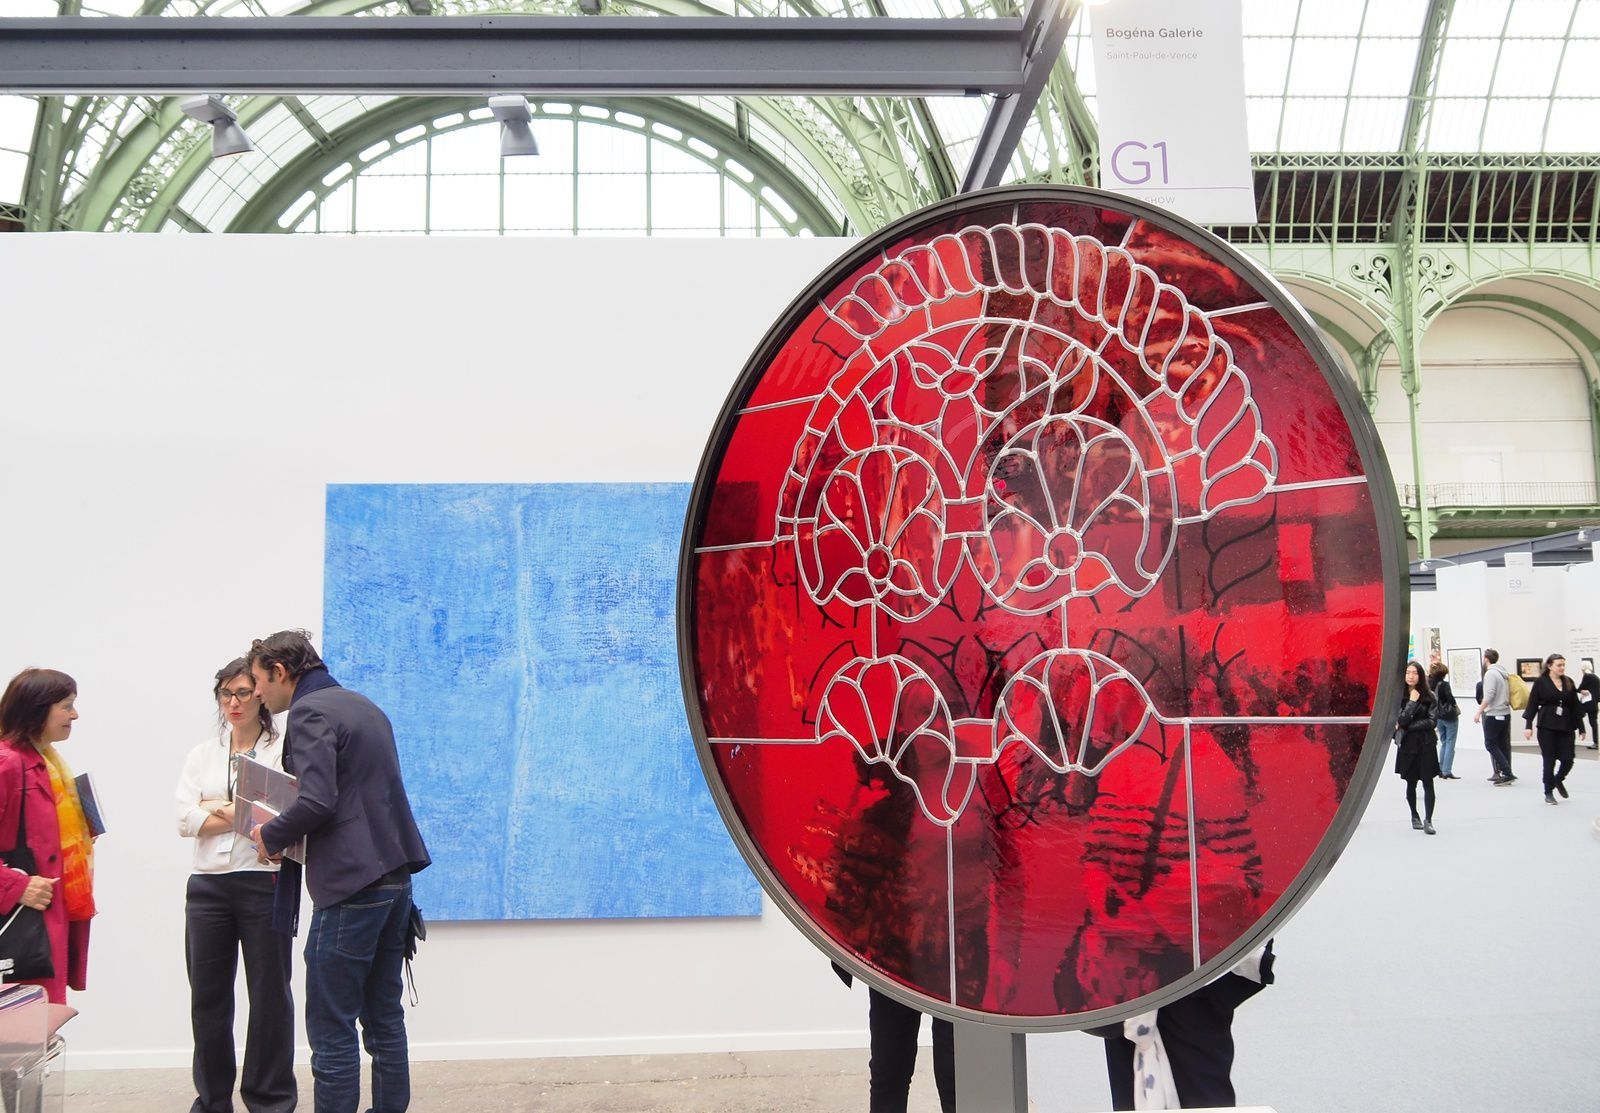 Les 20 Ans d'Art Paris au Grand Palais part 1